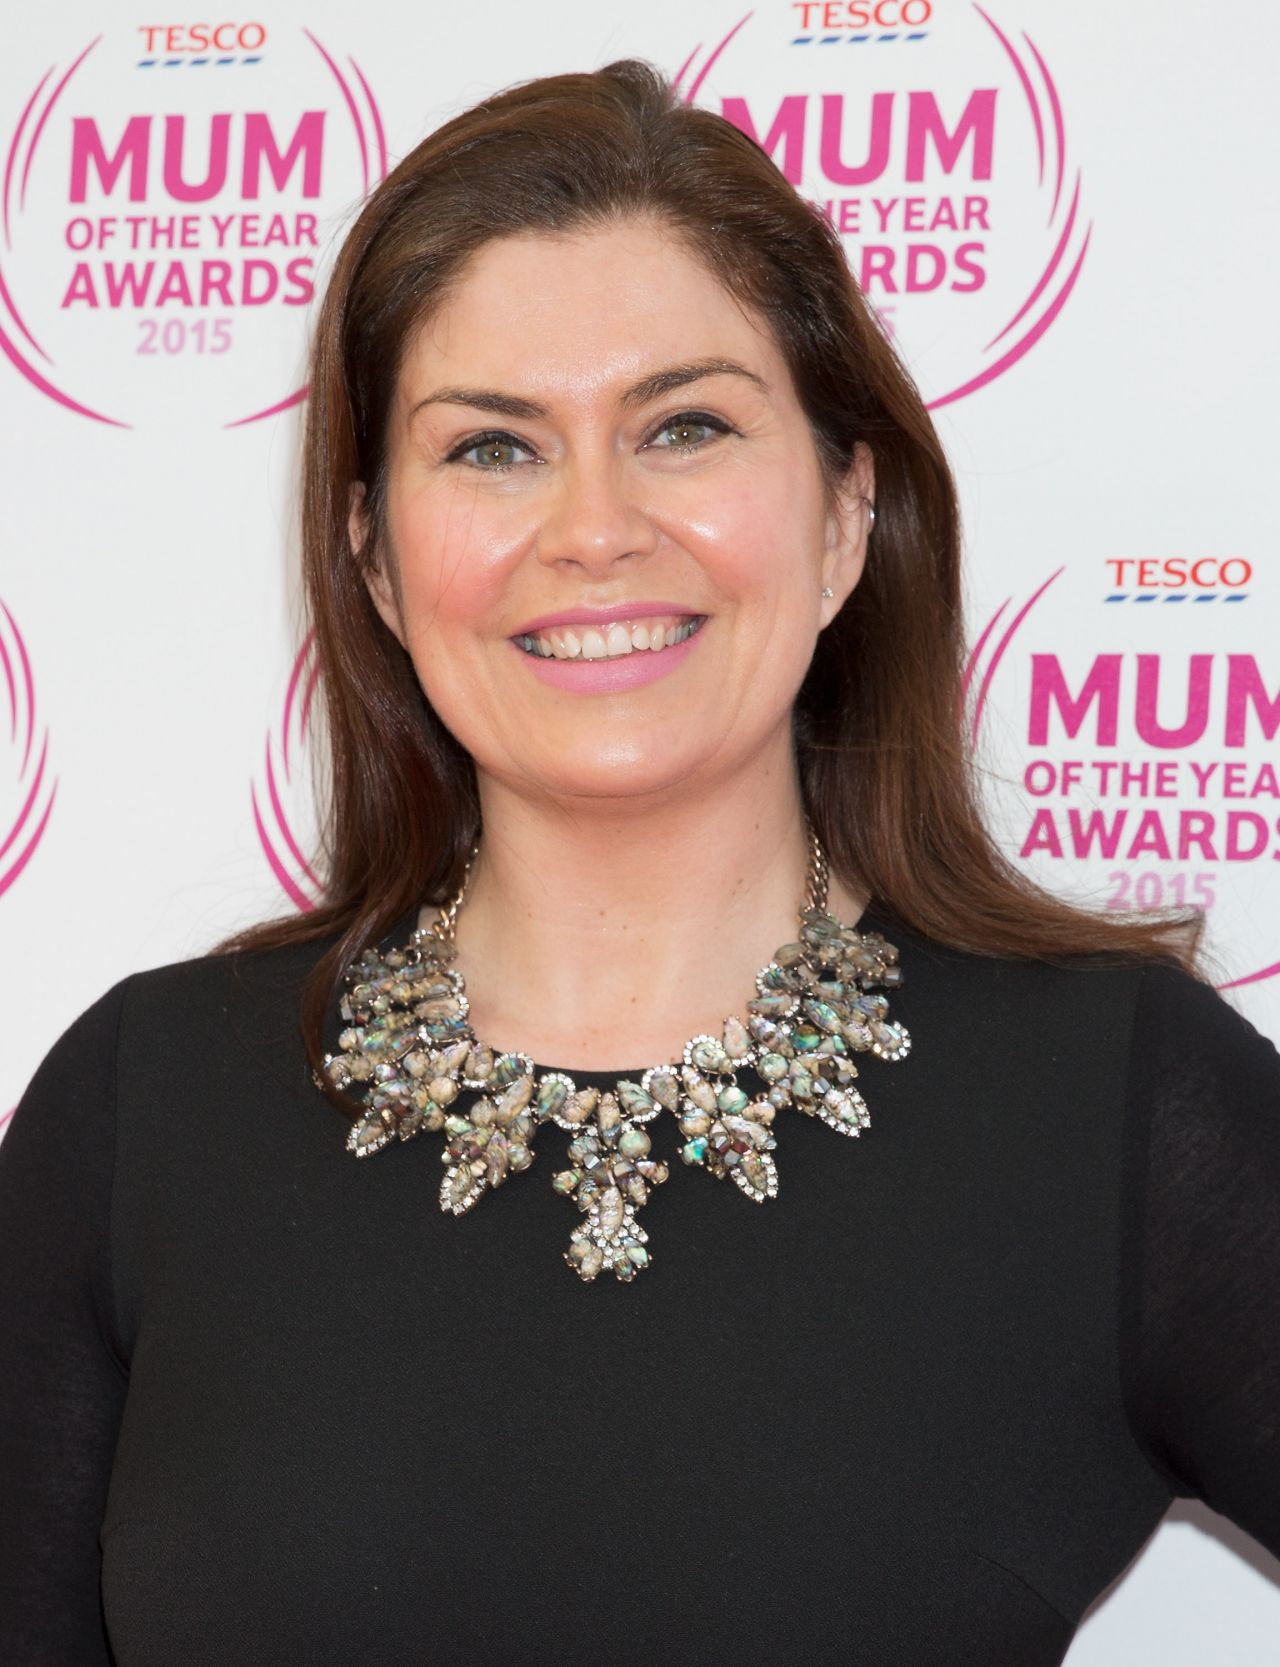 Amanda Lamb – 2015 Tesco Mum Of The Year Awards in London